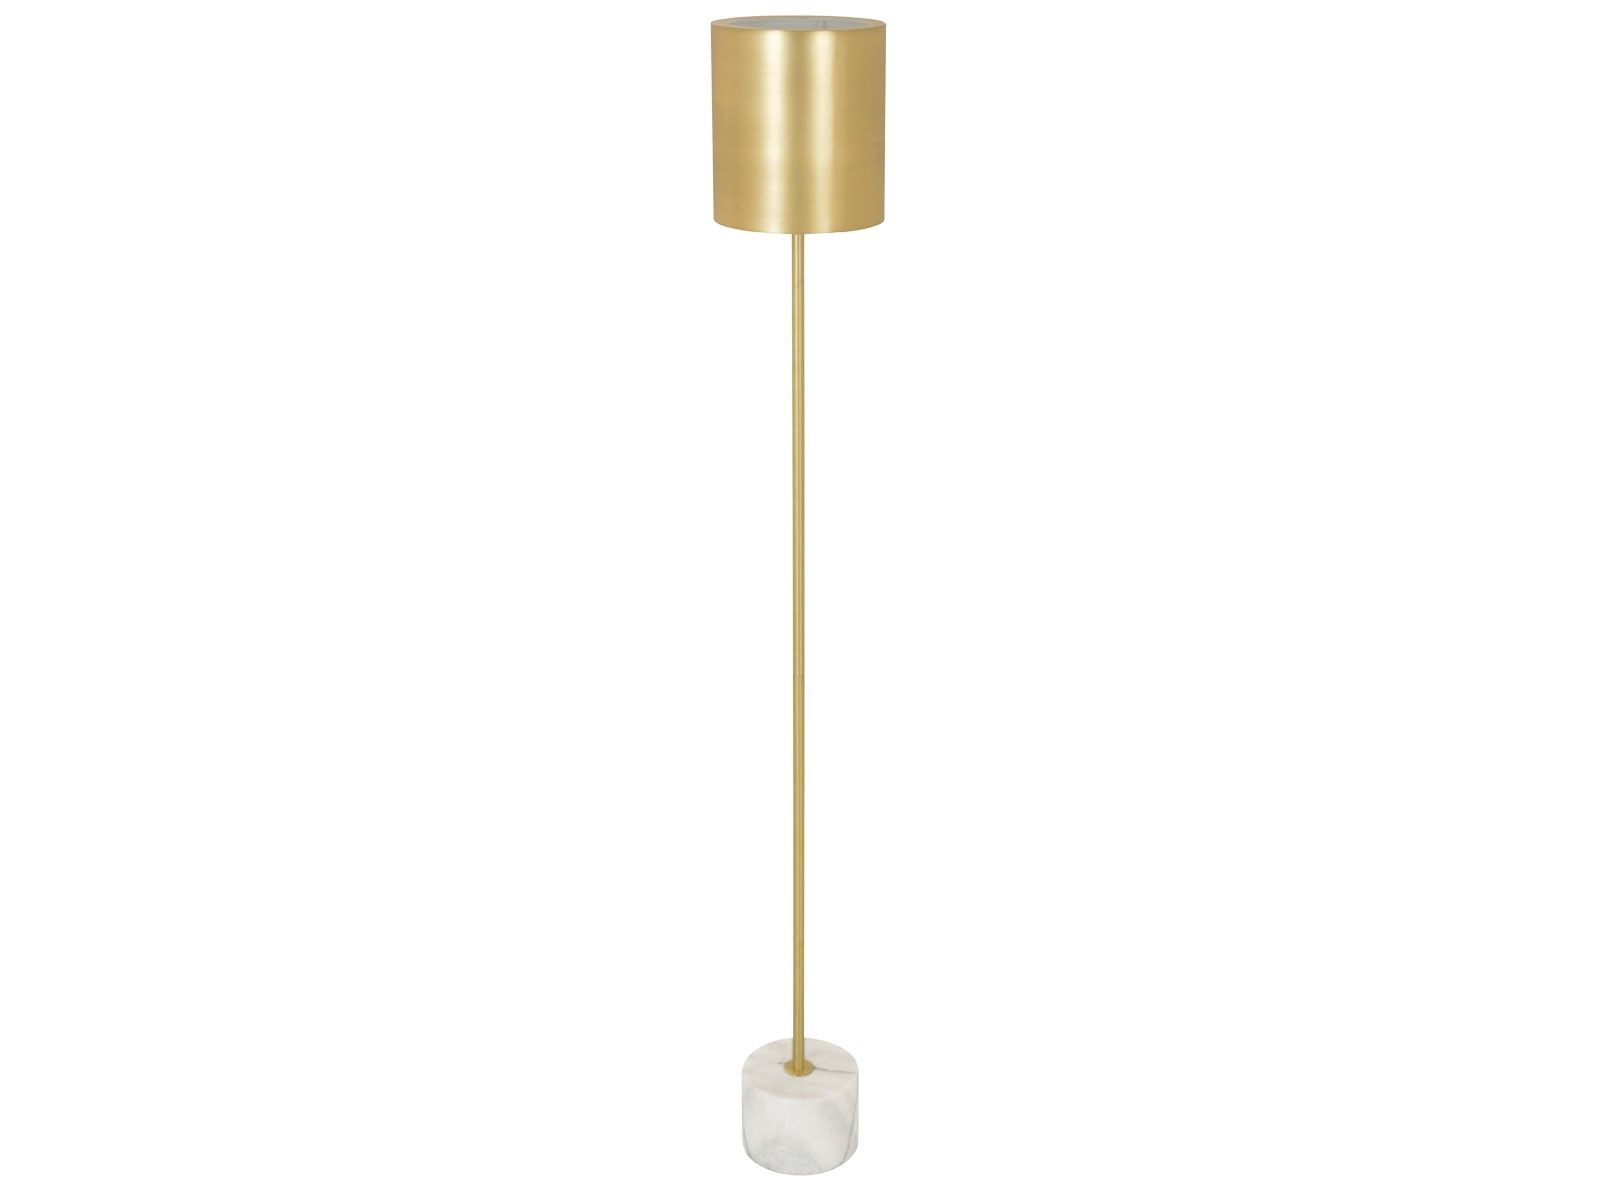 Elk 1 Light Floor Lamp in Brass | Lights | Pinterest | Elk, Floor ...